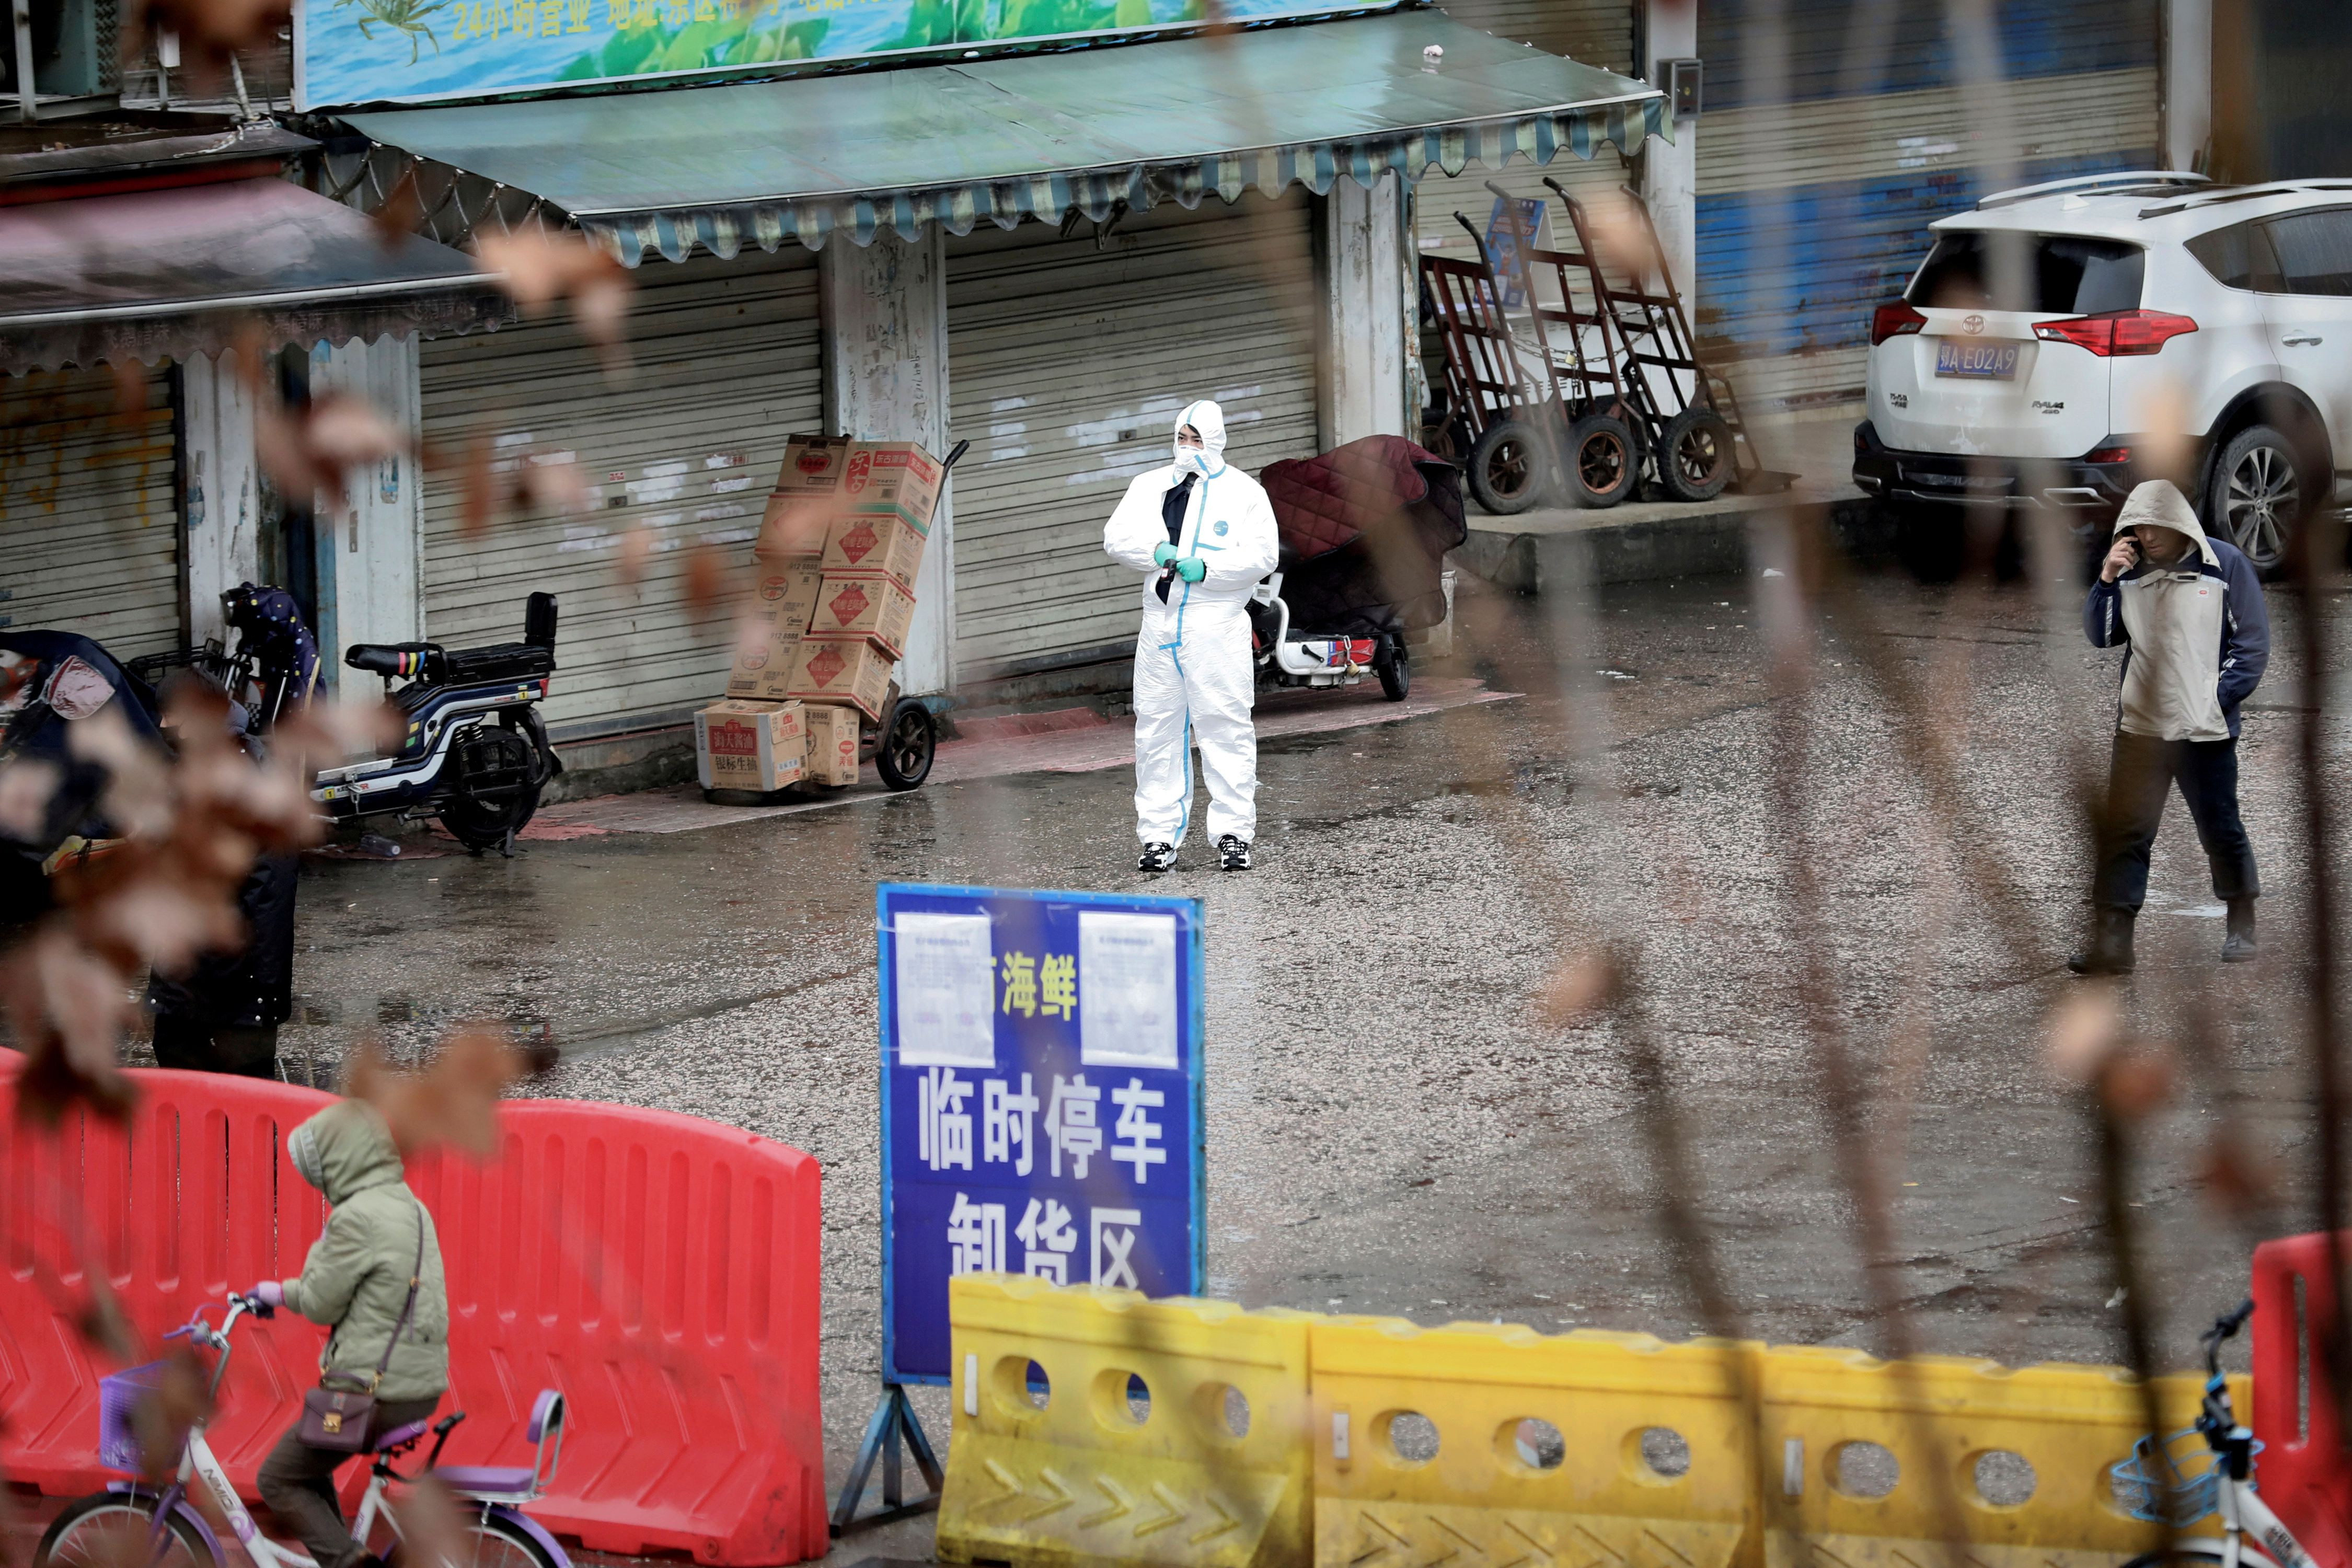 FILE PHOTO: A worker in a protective suit is seen at the closed seafood market in Wuhan, Hubei province, China January 10, 2020. Picture taken January 10, 2020. REUTERS/Stringer/File Photo